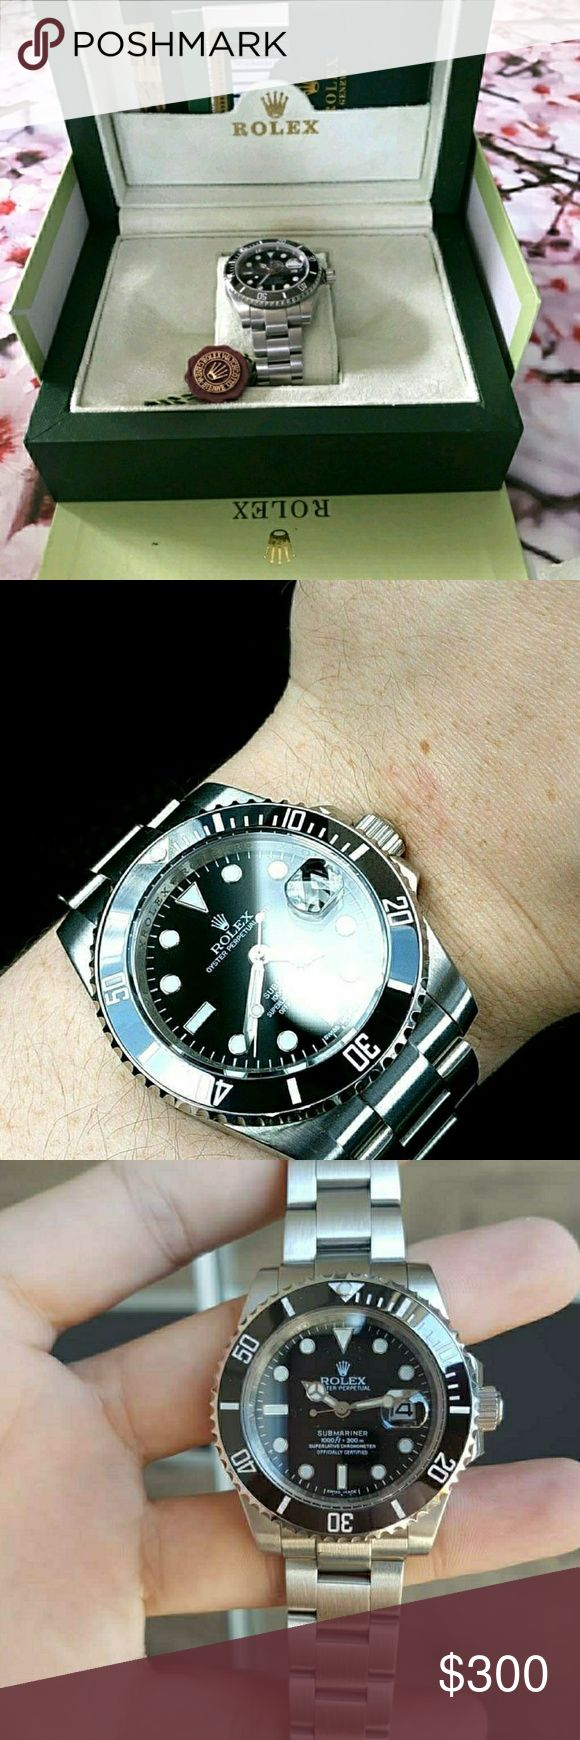 Stainless steel and black Submariner Stainless steel Rolex Submariner with a black ceramic bezel, has proper magnification on the cyclops etching at 6 and Most of all it glides. This is a high end rep, that is why the price is in the hundreds. I also accept MG or PP and give a lower price I have done so on posh, and other apps and have had 5 star review. If you have any questions please ask, I ALSO CAN GET JUST ABOUT ANY WATCH SO IF YOU DONT SEE WHAT YOU LIKE ASK ME FOR IT. PLEASE CONTACT ME…